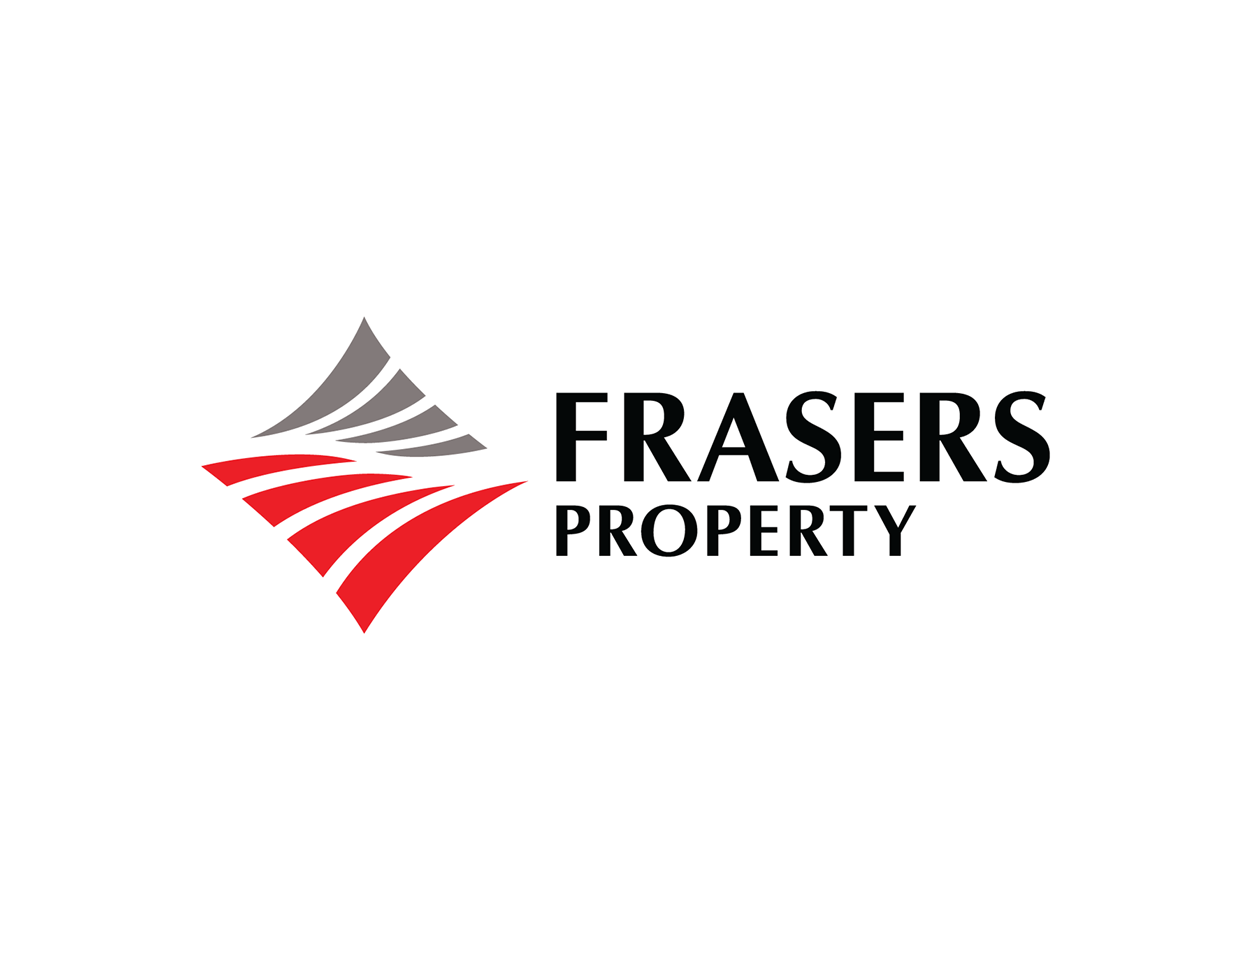 Frasers-Property-rz